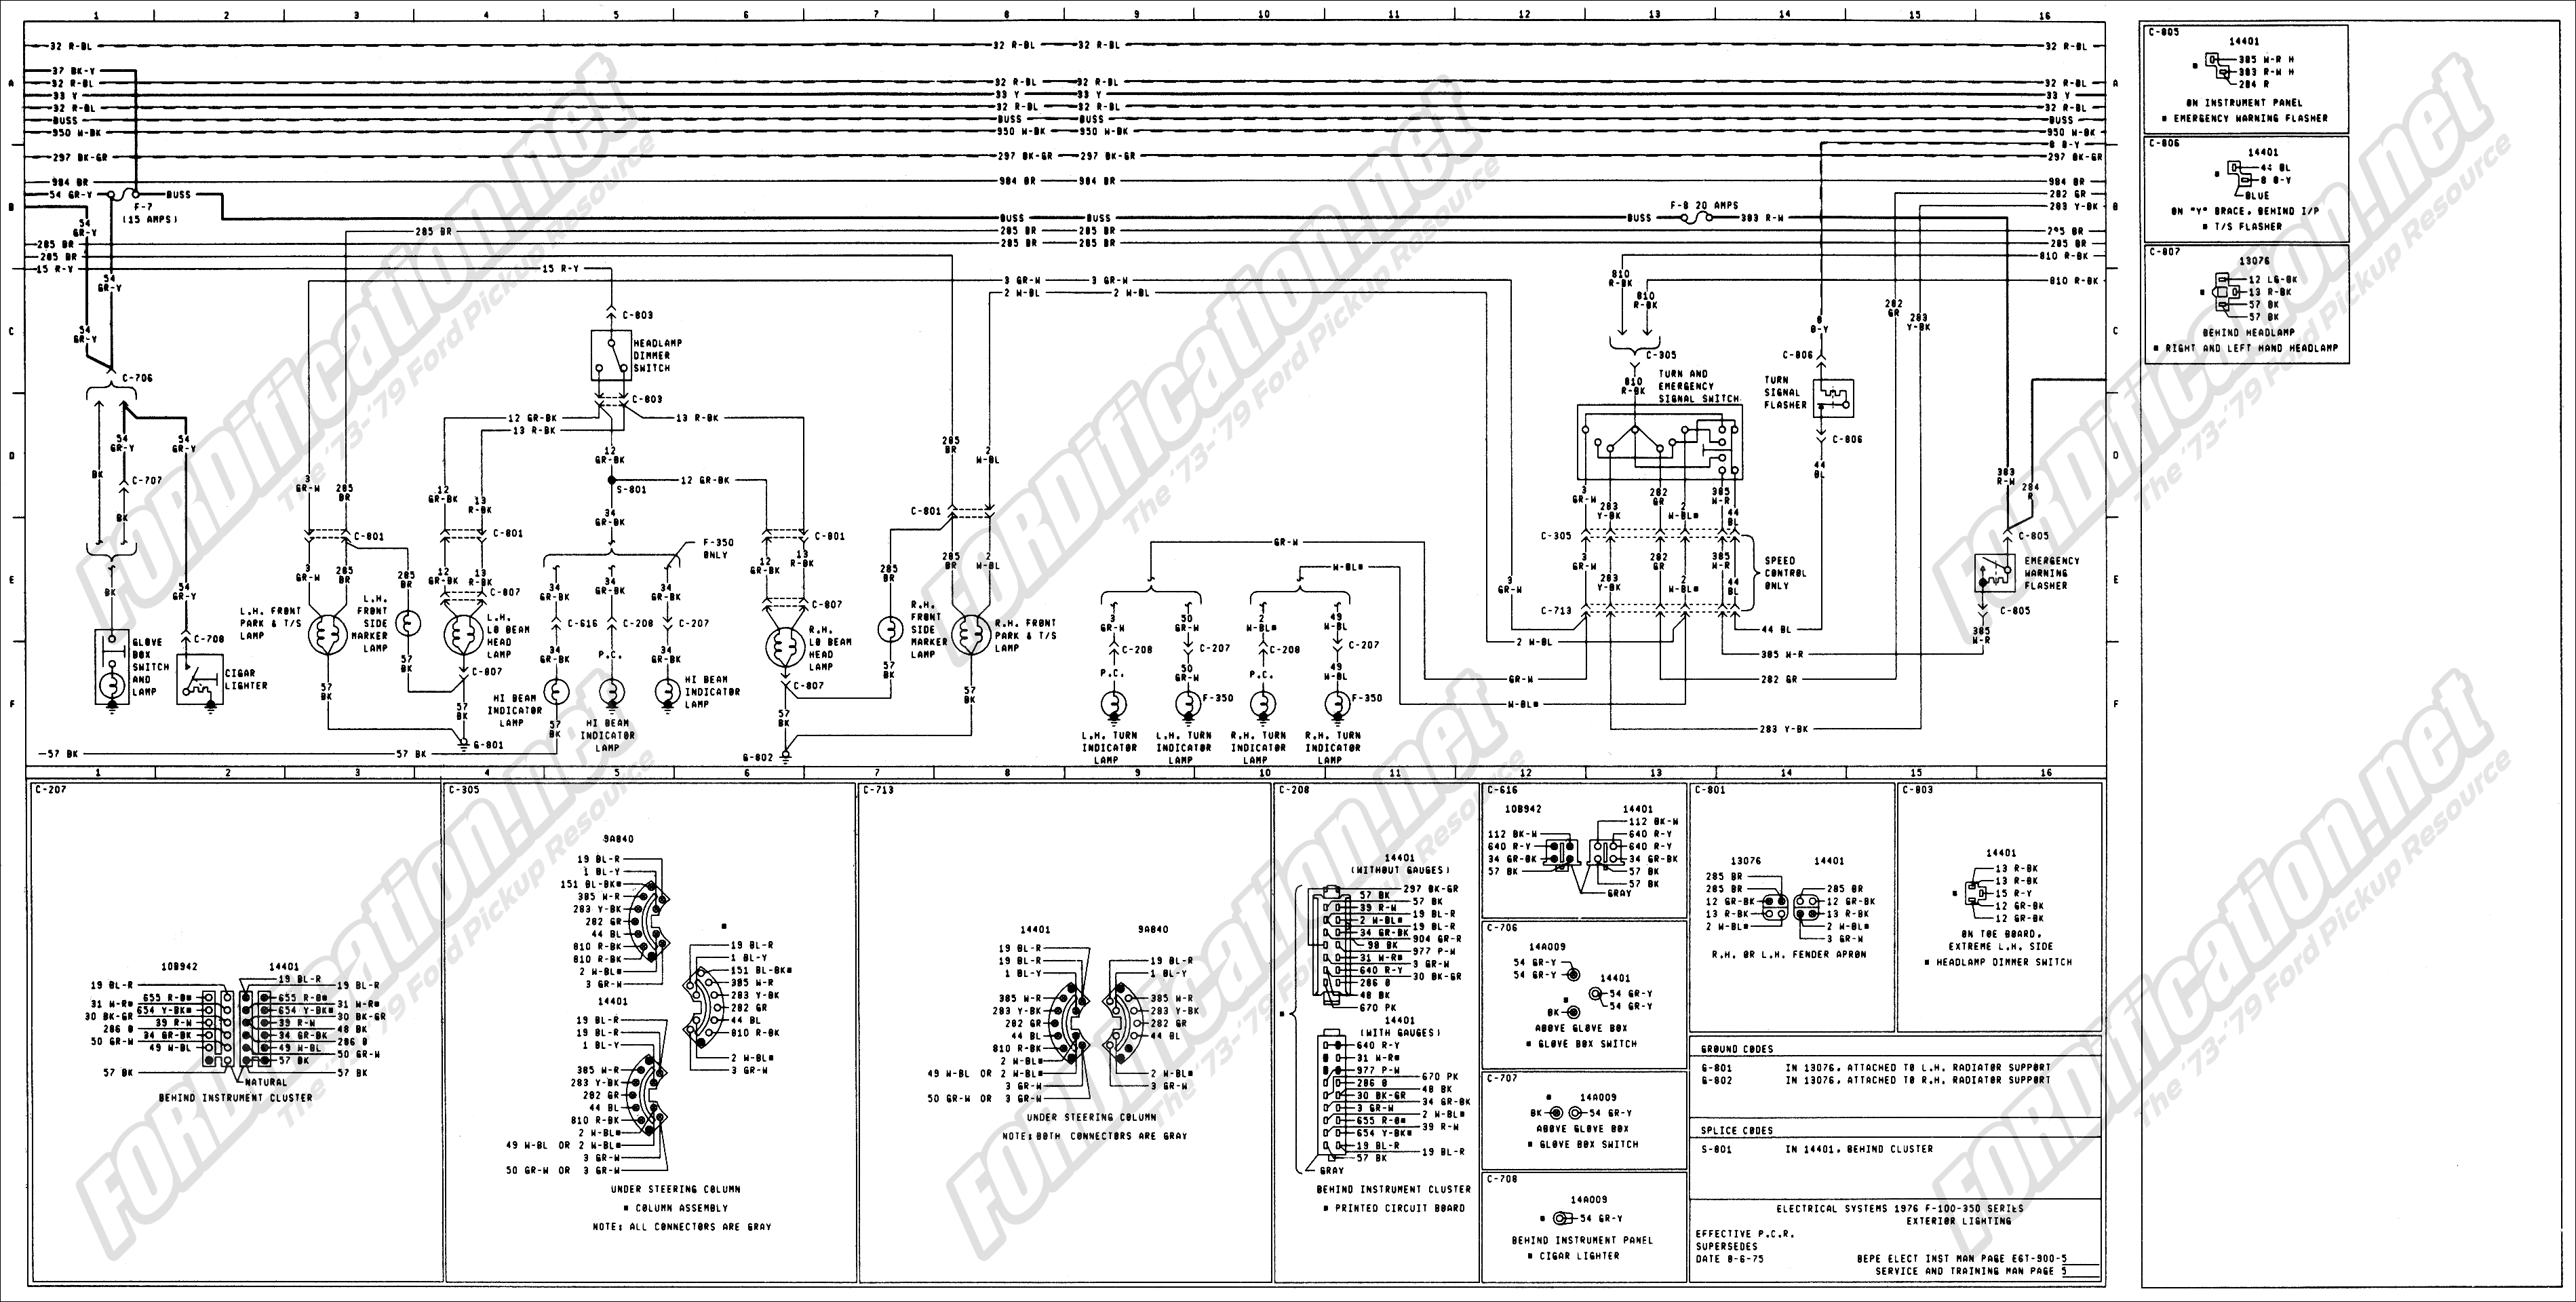 wiring_76master_5of9 1973 1979 ford truck wiring diagrams & schematics fordification net what color is l in wiring diagram at bakdesigns.co